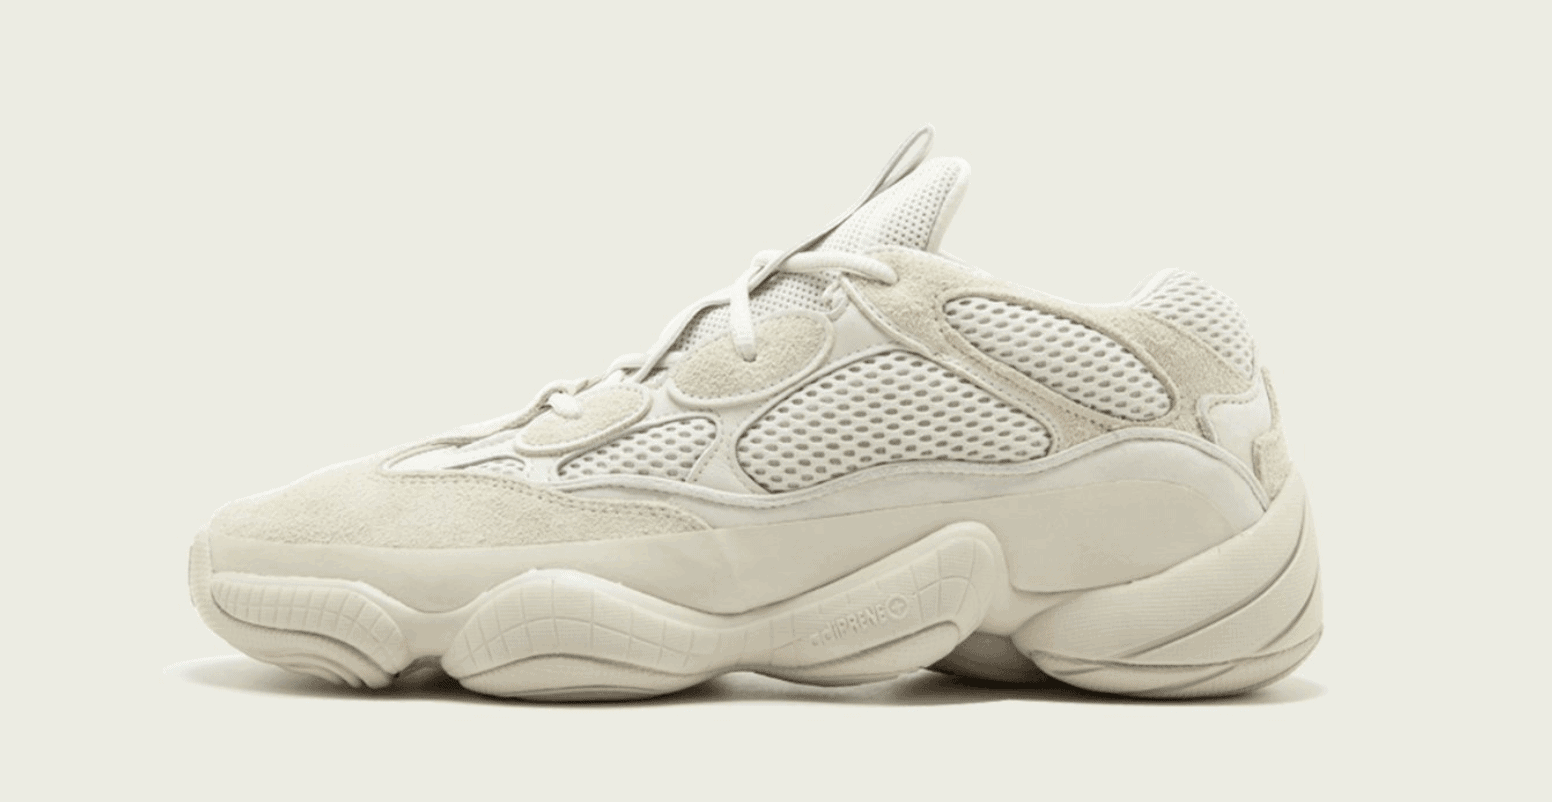 eff3a8115 If you have been waiting impatiently to get your hands on the new Yeezy 500